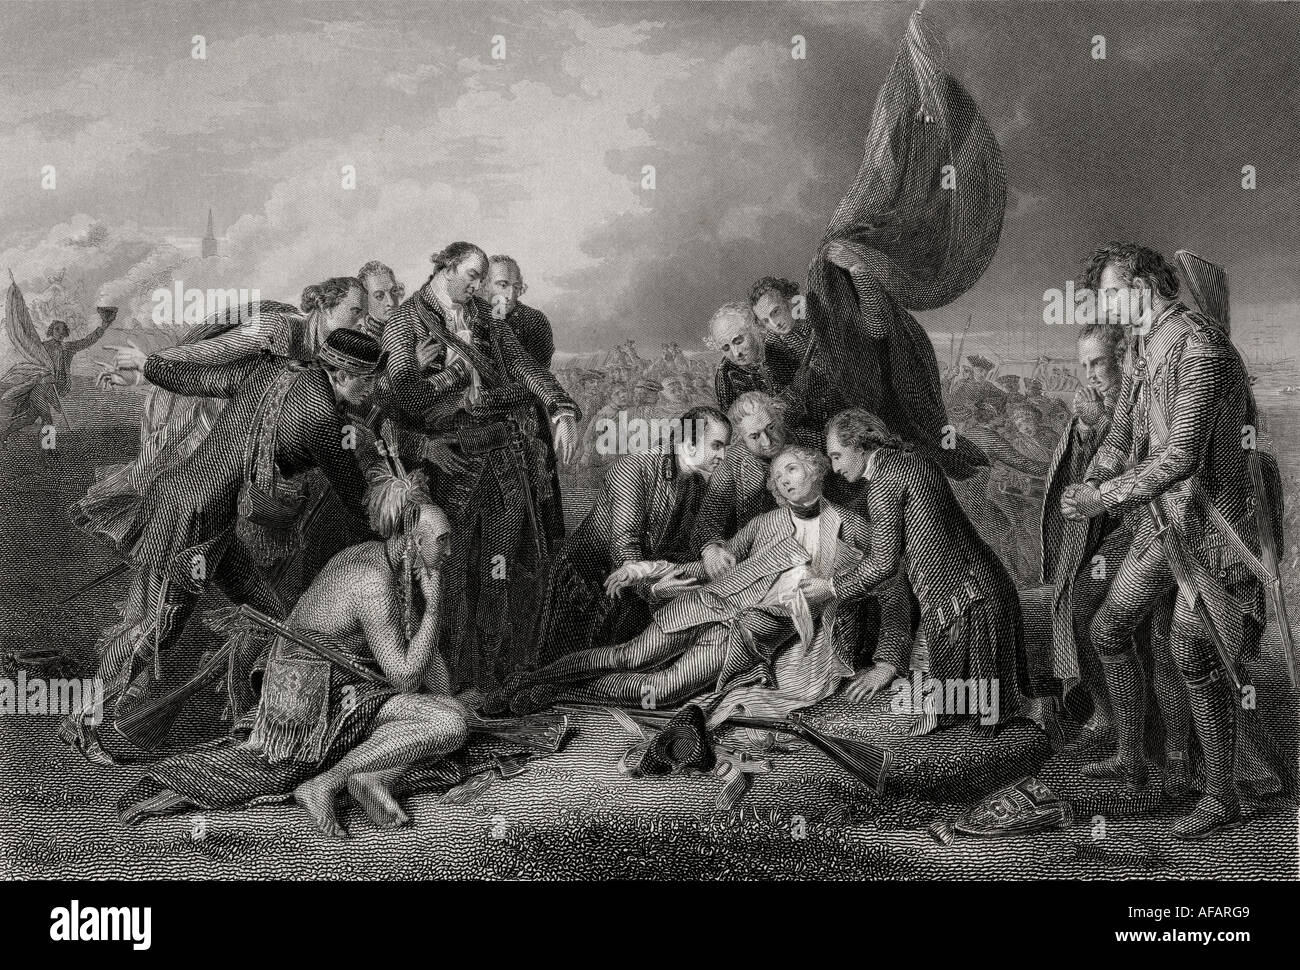 The Death of General Wolfe at the battle of Quebec 1759 - Stock Image